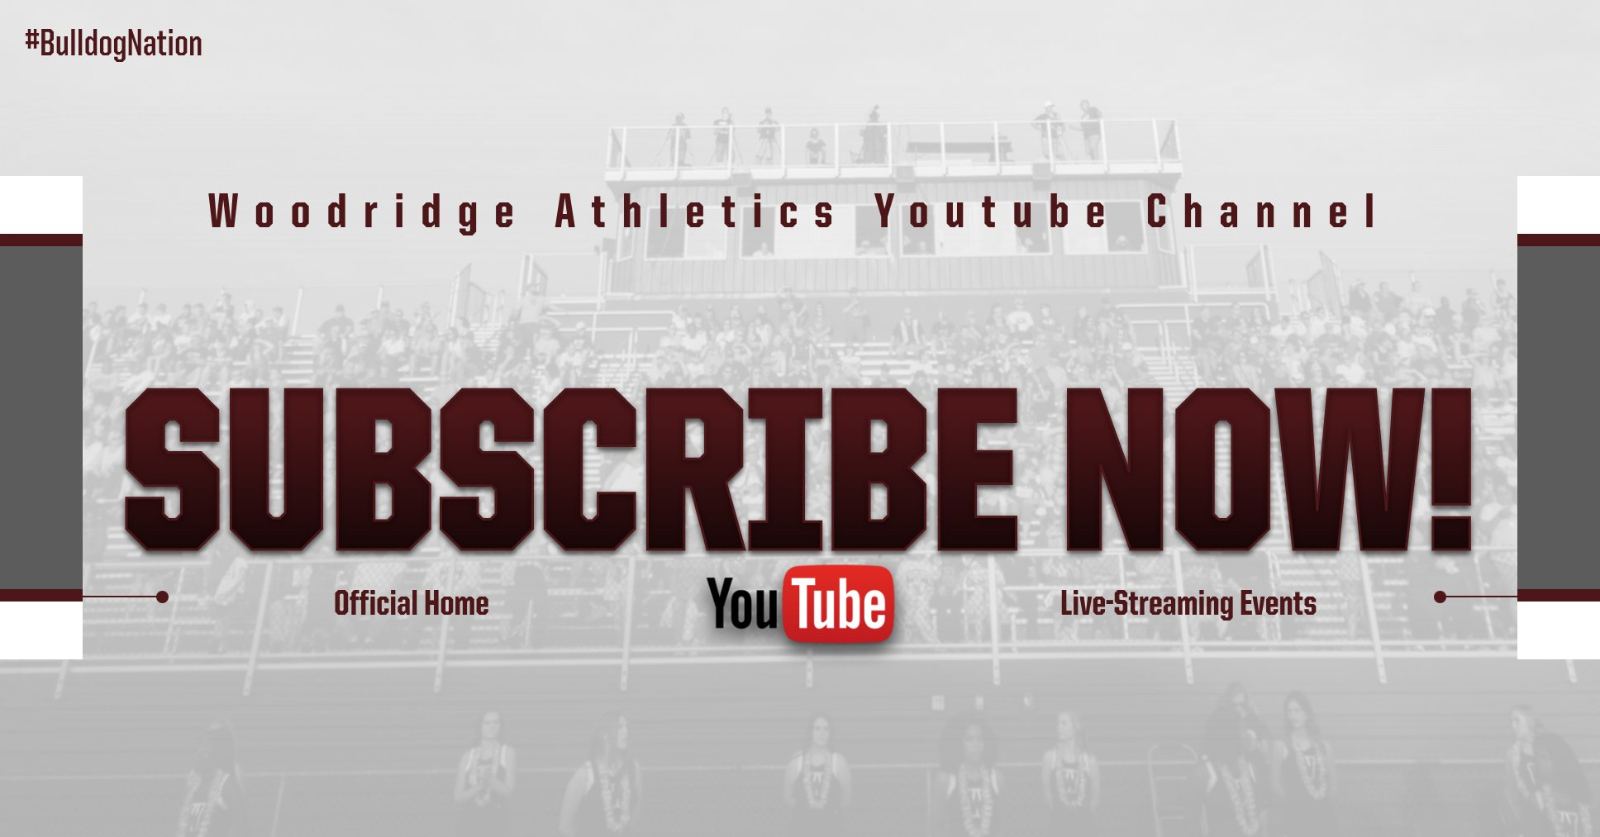 Subscribe Now! Woodridge Athletics Youtube Channel